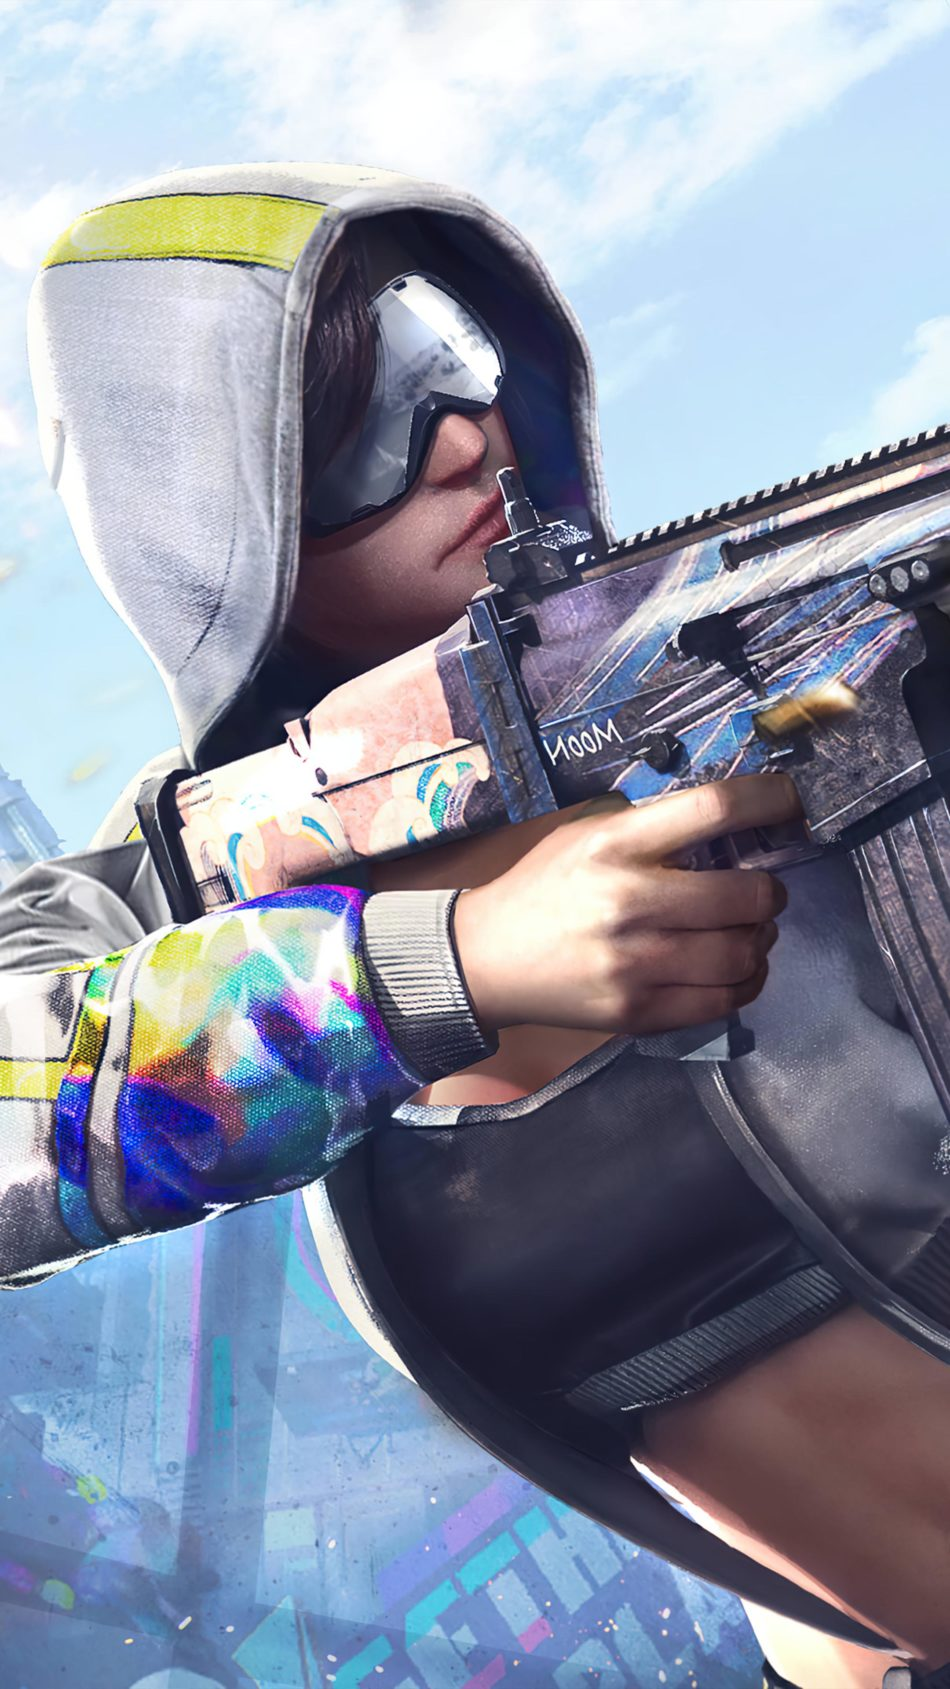 PUBG Girl Hoodie Gun 4K Ultra HD Mobile Wallpaper